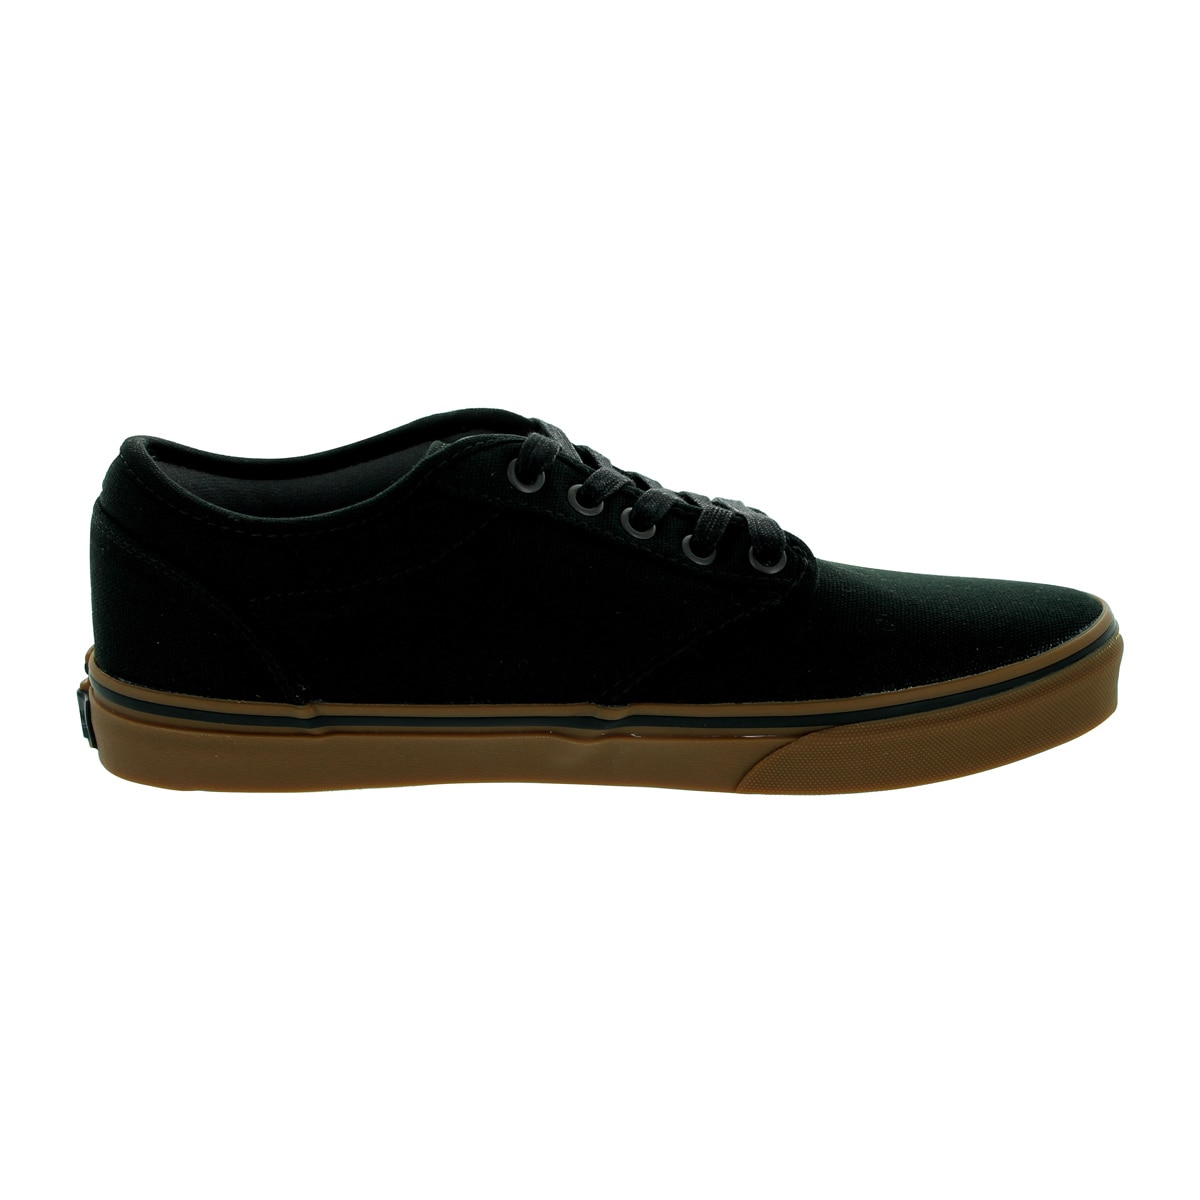 f742dd4195 Shop Vans Men s Atwood Black Gum 12-ounce Canvas Skate Shoe - Free Shipping  Today - Overstock - 12115333